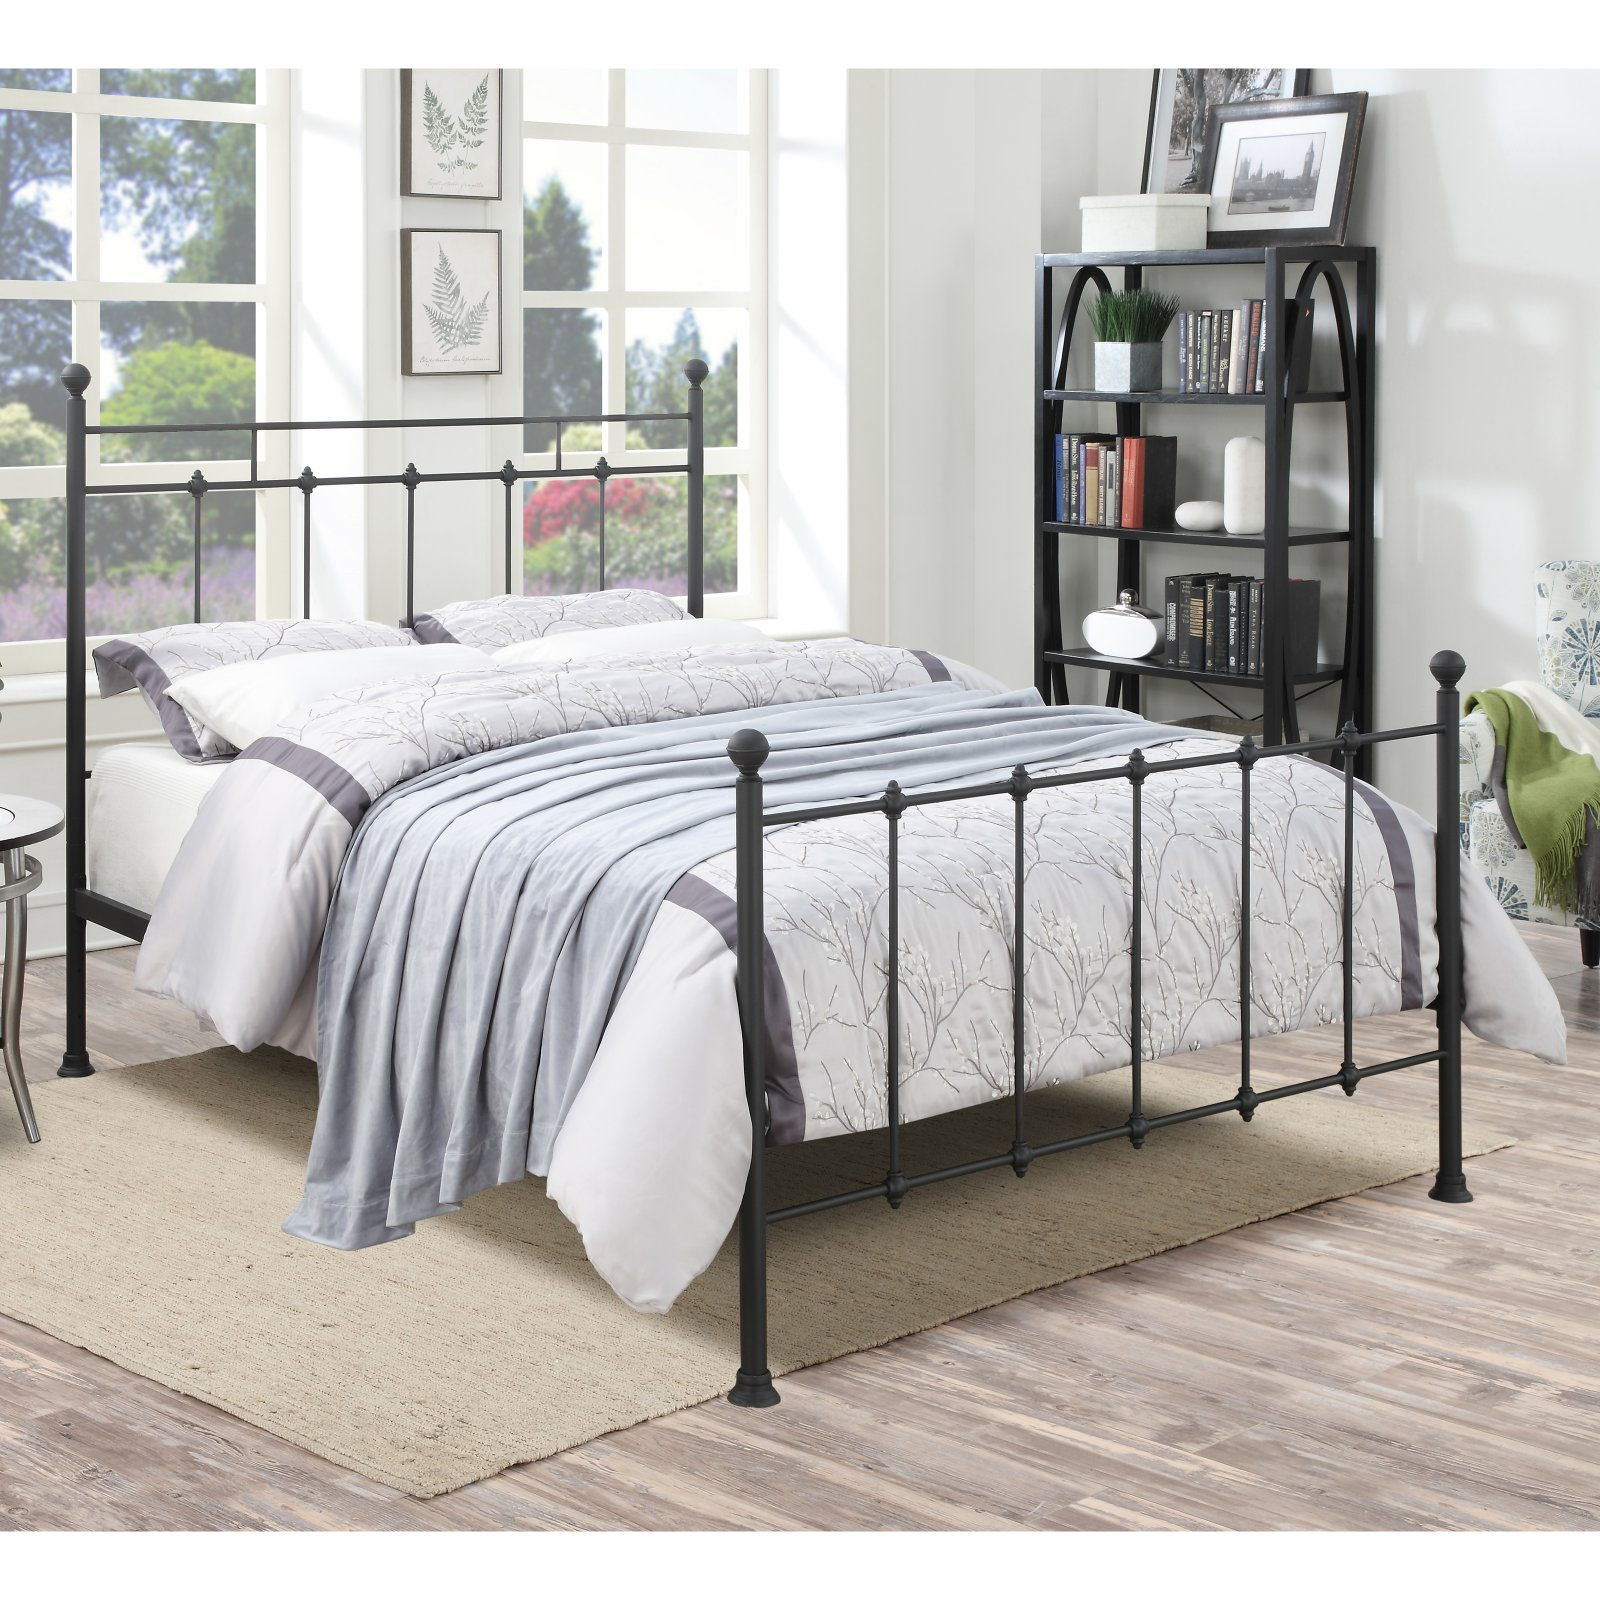 Queen Bed Frame Home Meridian Stockbridge Standard Queen Bed